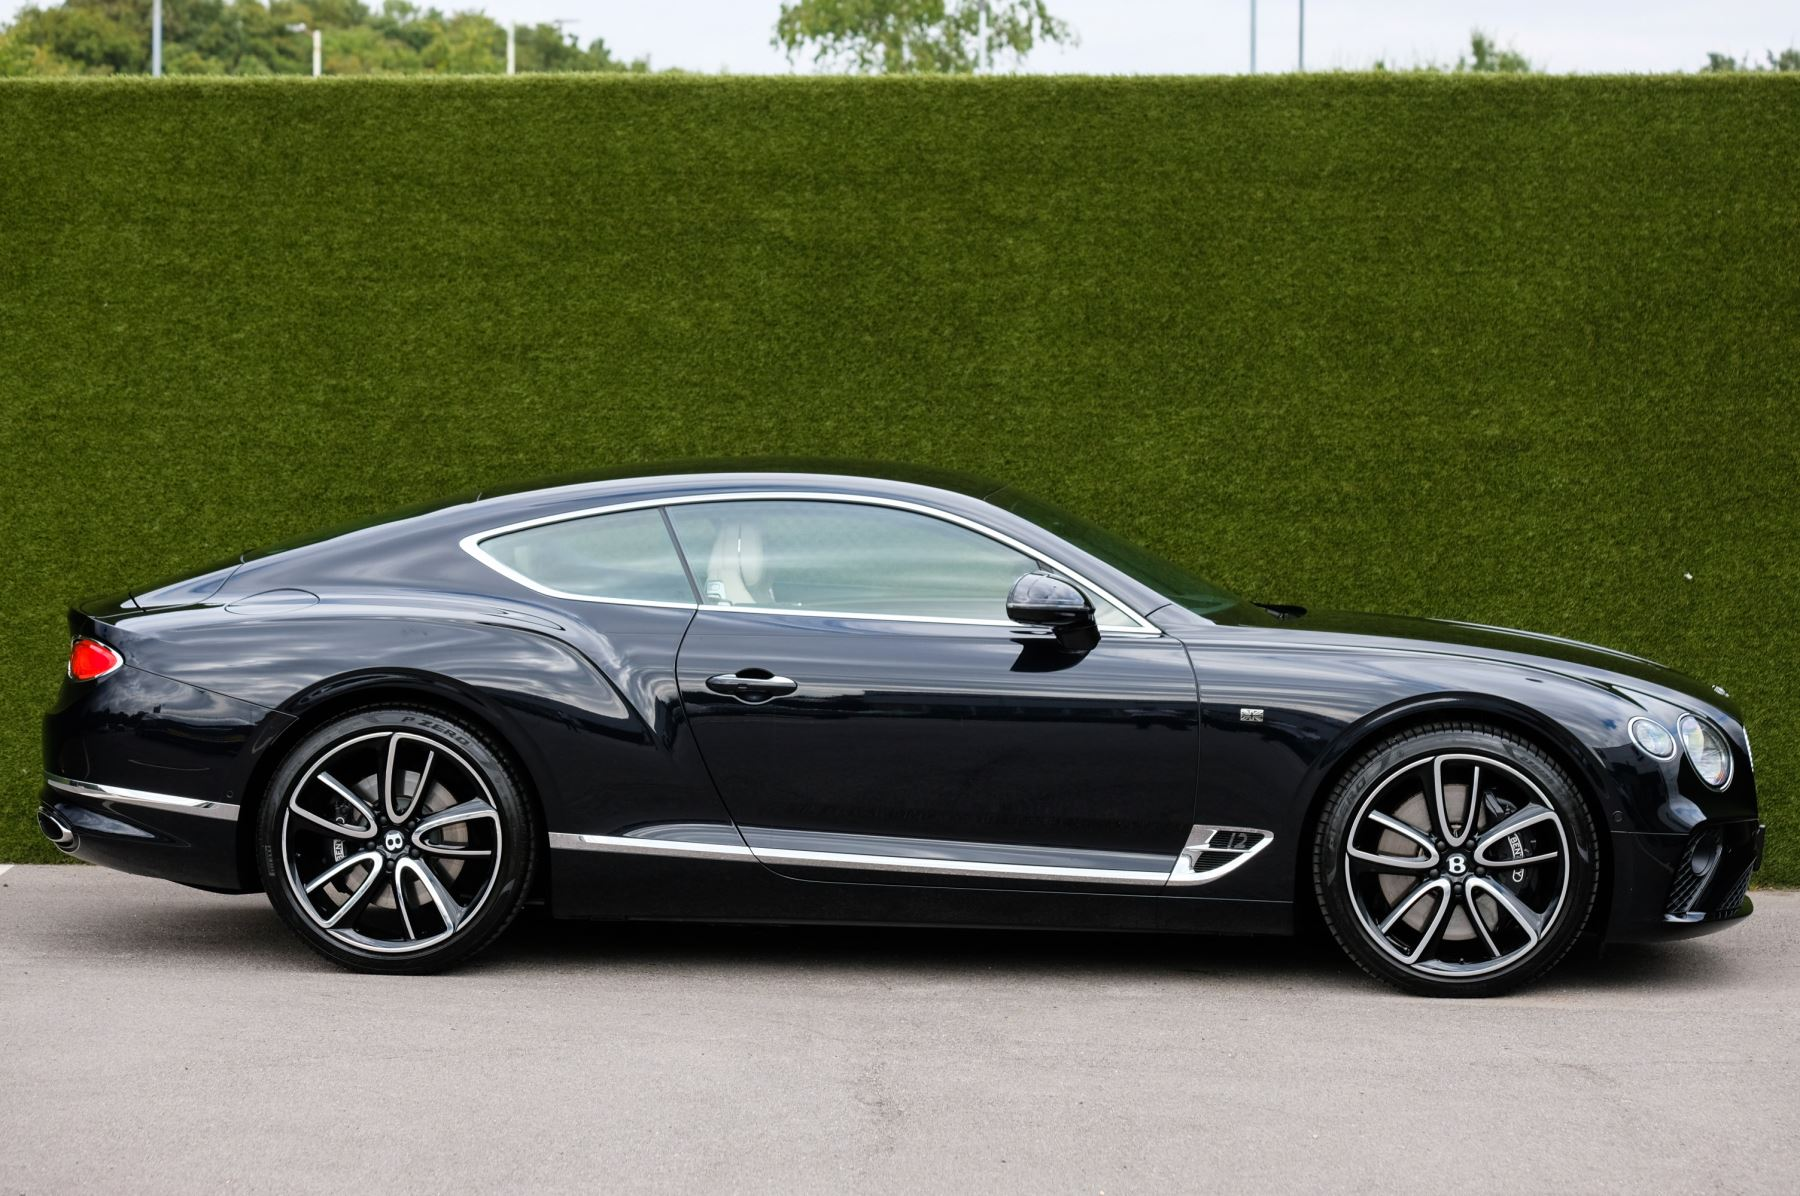 Bentley Continental GT 6.0 W12 1st Edition - Comfort Seating - Touring Specification image 3